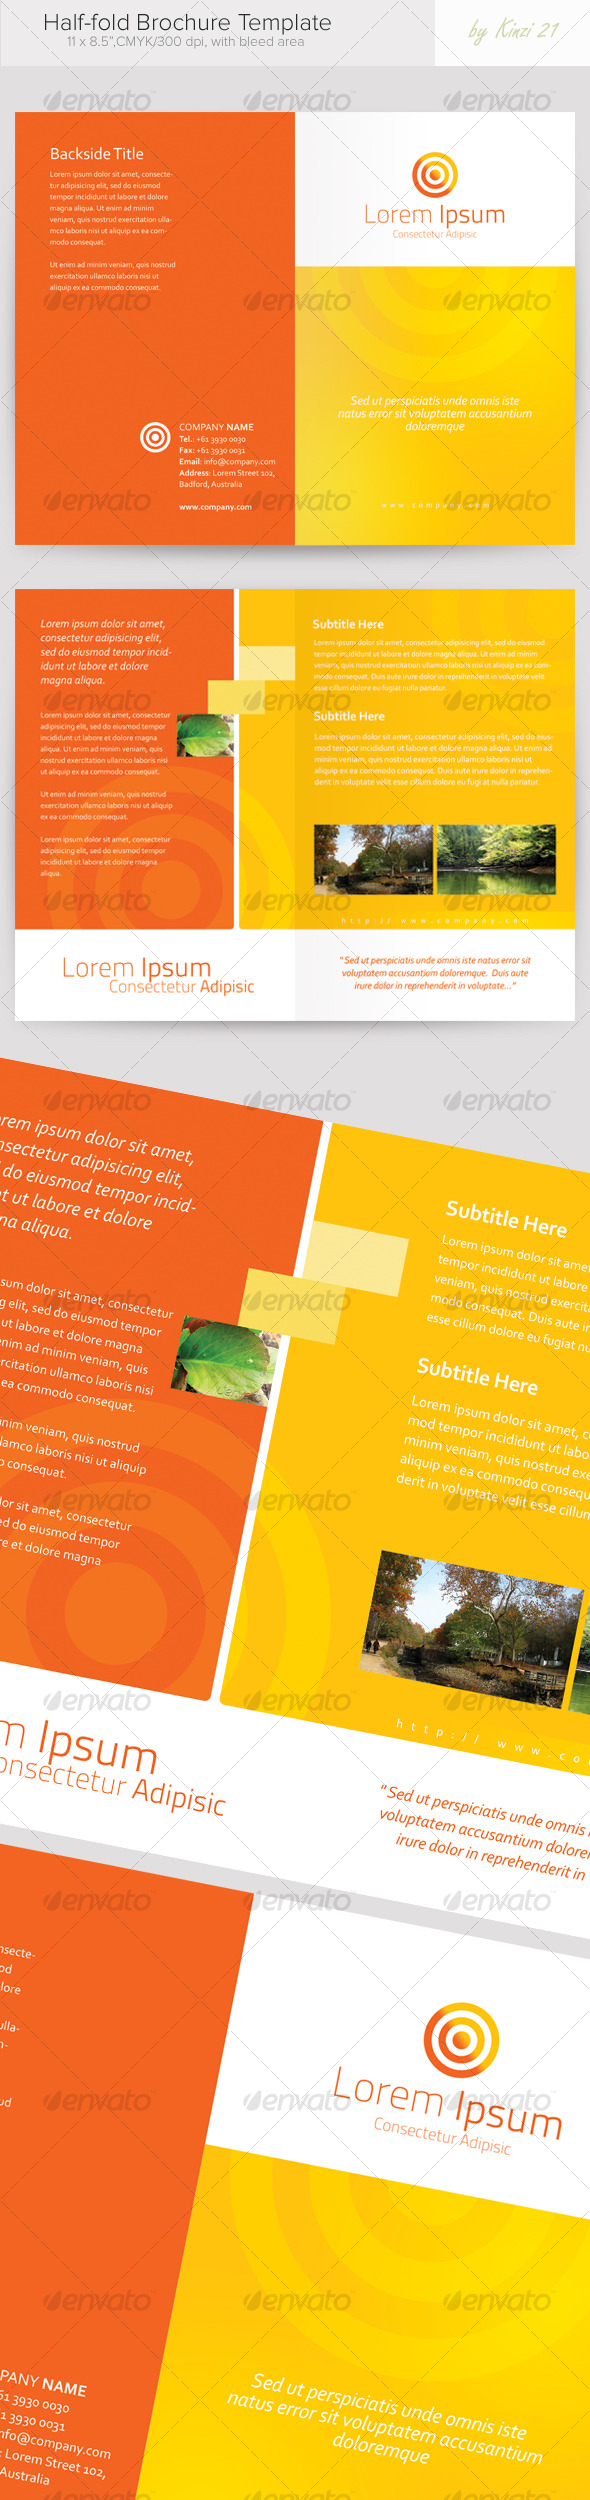 GraphicRiver Half-fold Brochure Template 119830